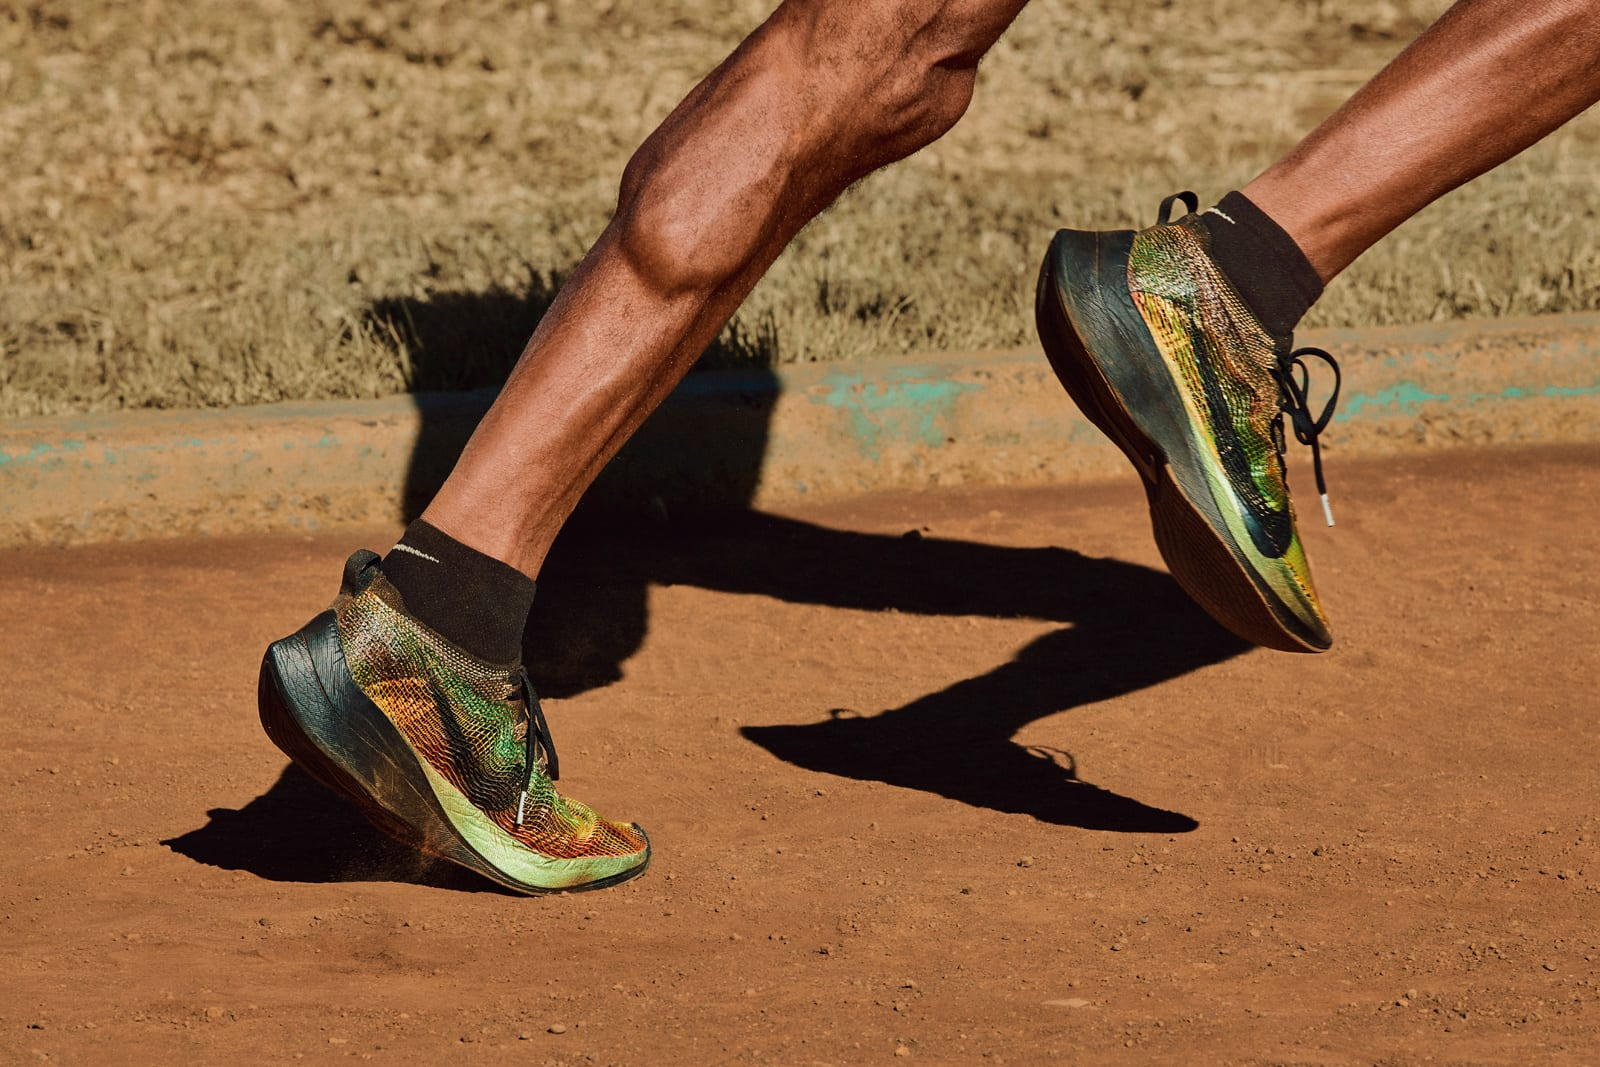 Nike's 3D-printed textiles make running shoes even lighter